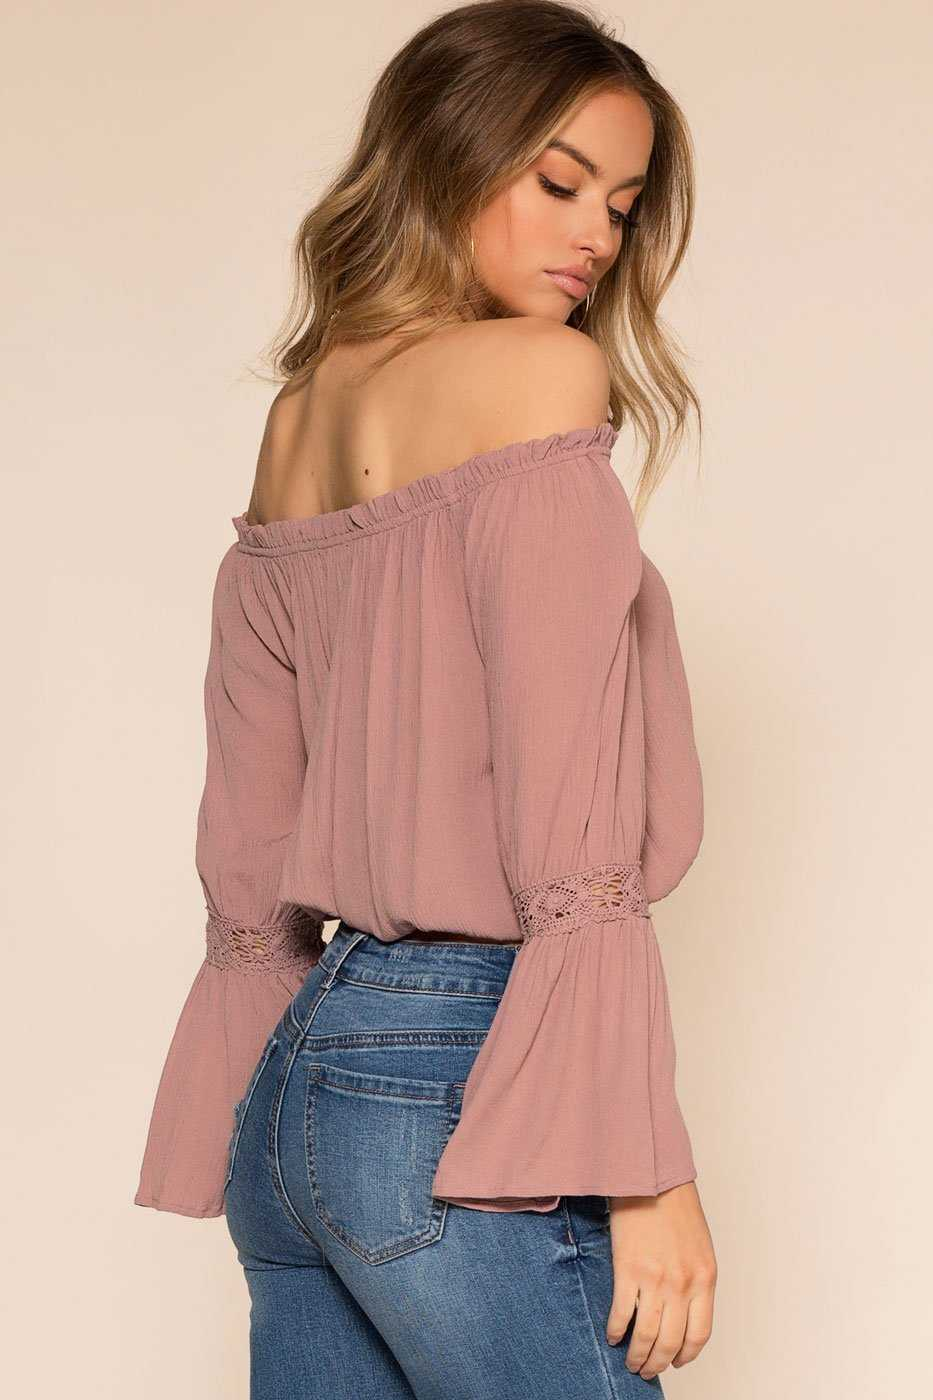 Tops - Tawny Off The Shoulder Top - Mauve